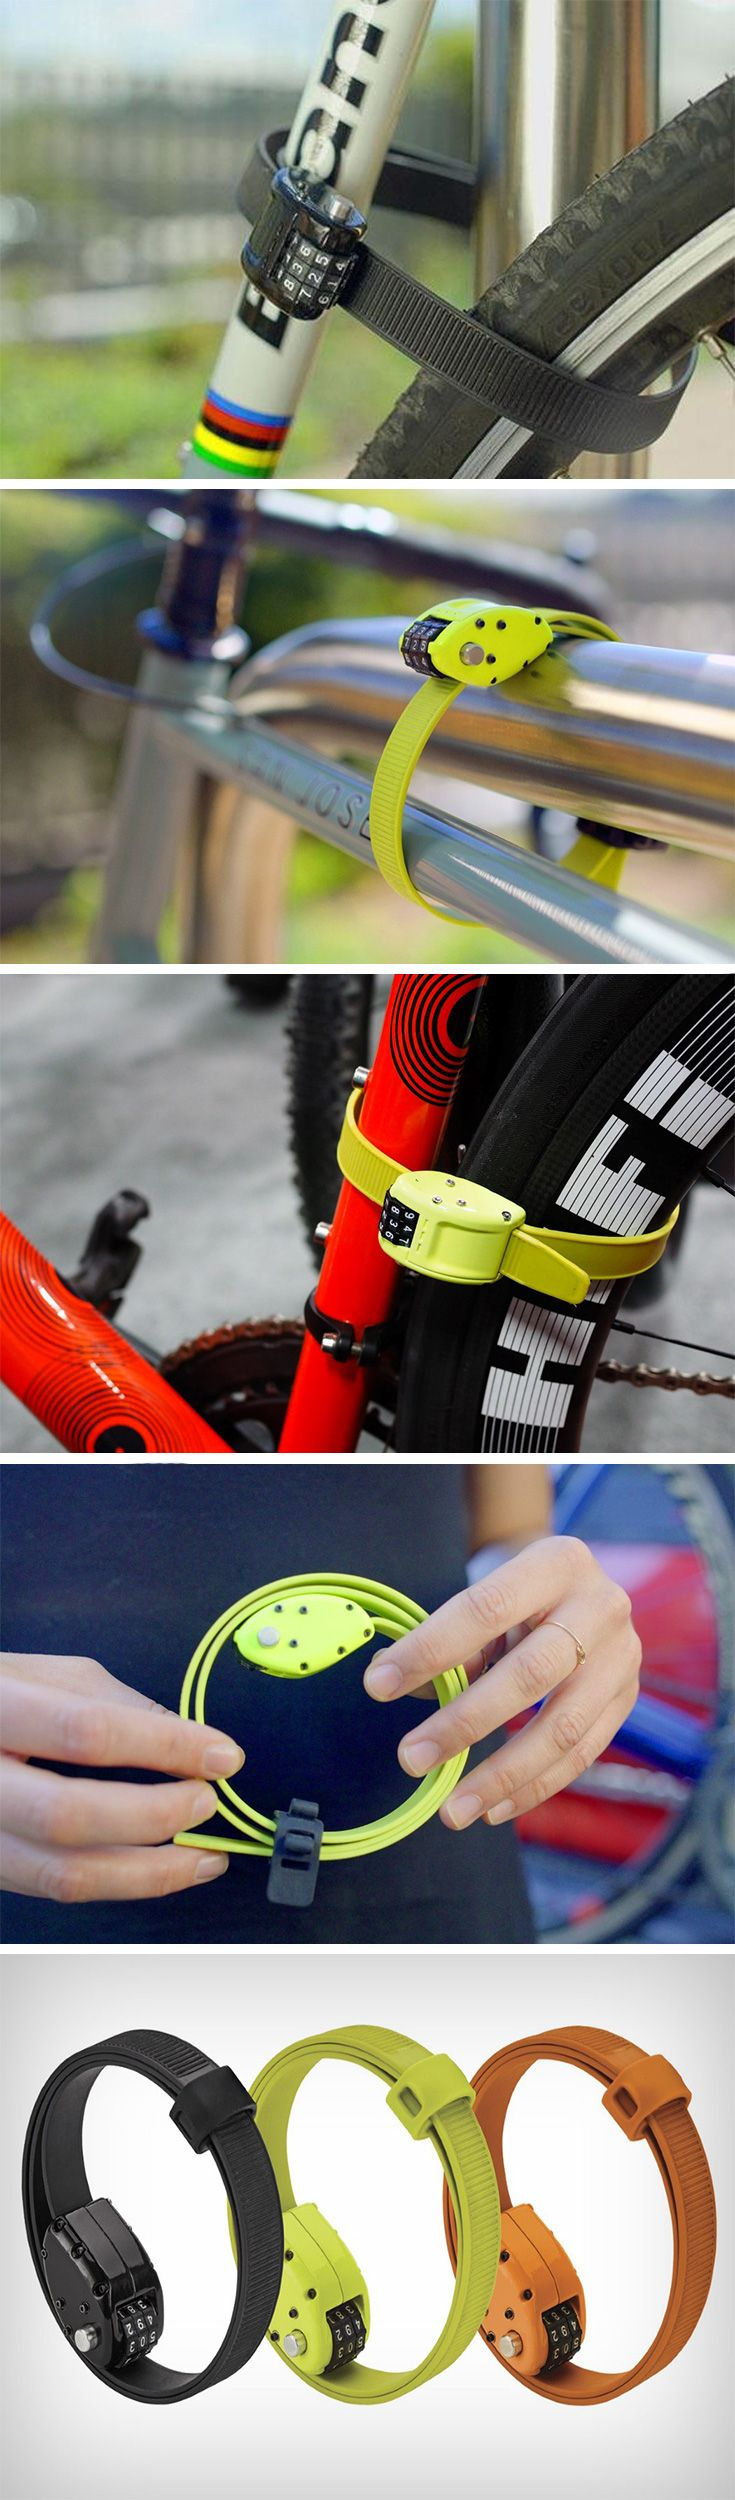 While most bike locks or travel locks are made from metal the Ottolock uses one of the most light yet powerful polymers known to man. Kevlar. The same material used in bulletproof vests, the Kevlar fr